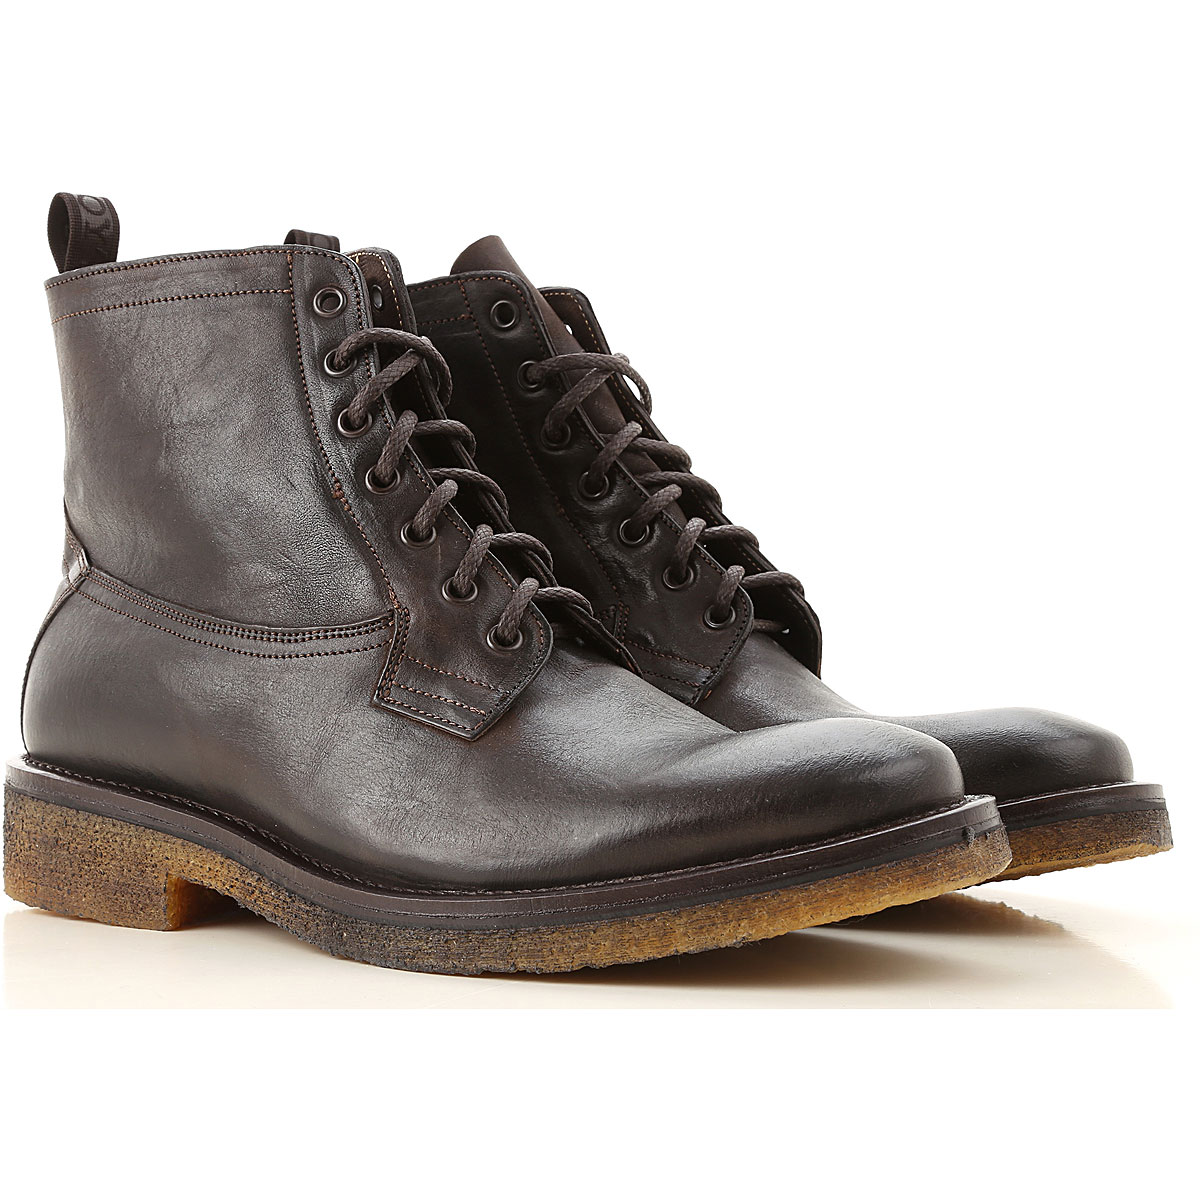 Seboys Boots for Men, Booties On Sale, Dark Brown, Leather, 2019, 10.25 7 8 9 9.5